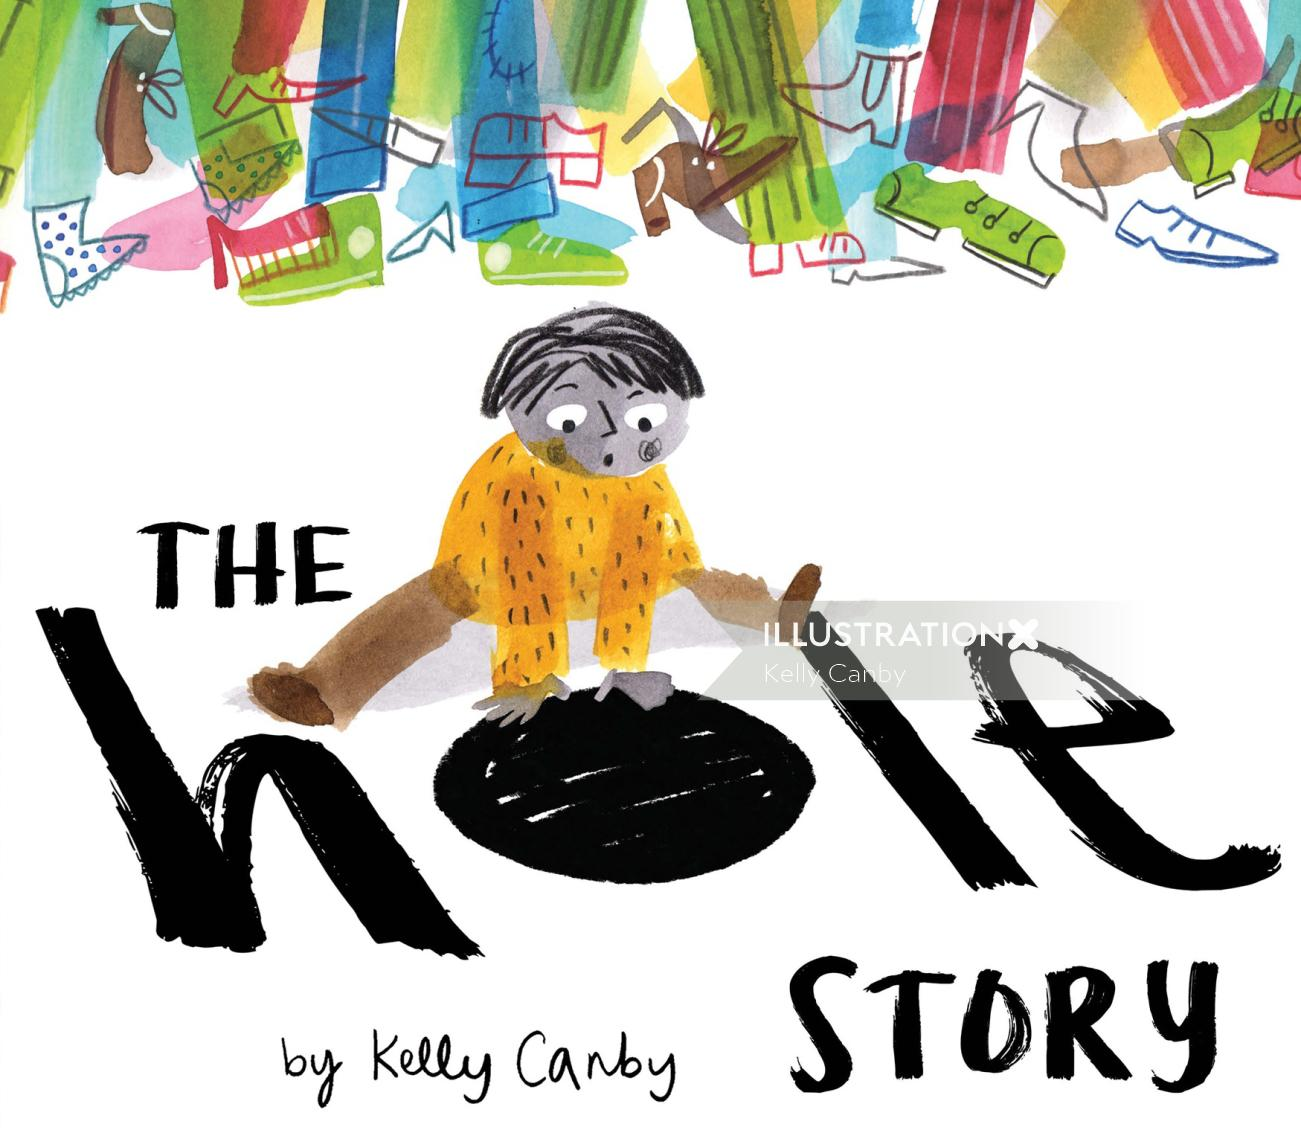 The Hole Story book cover poster by Kelly Canby